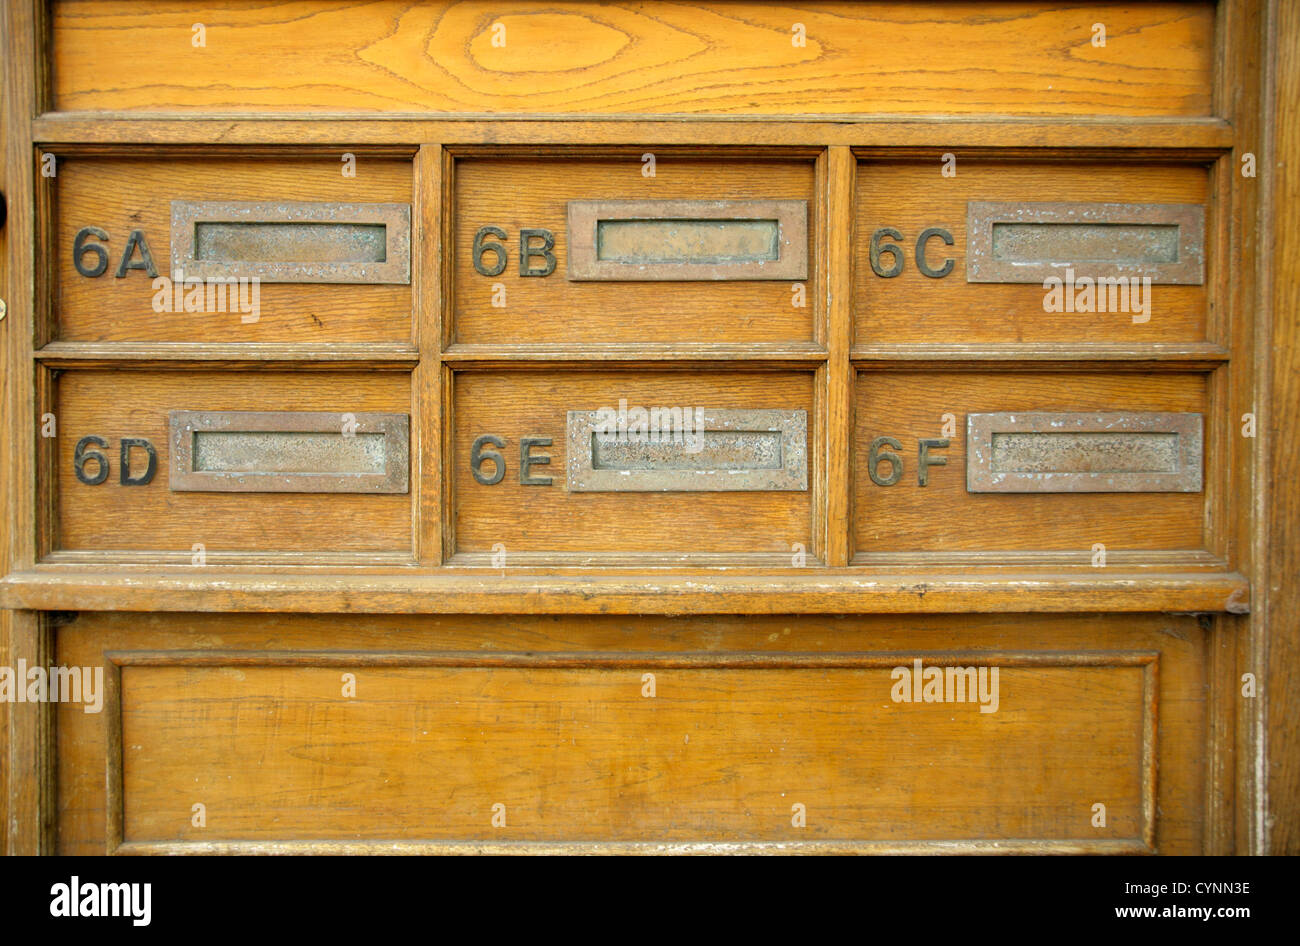 Six postboxes for flats 6A to 6F. - Stock Image